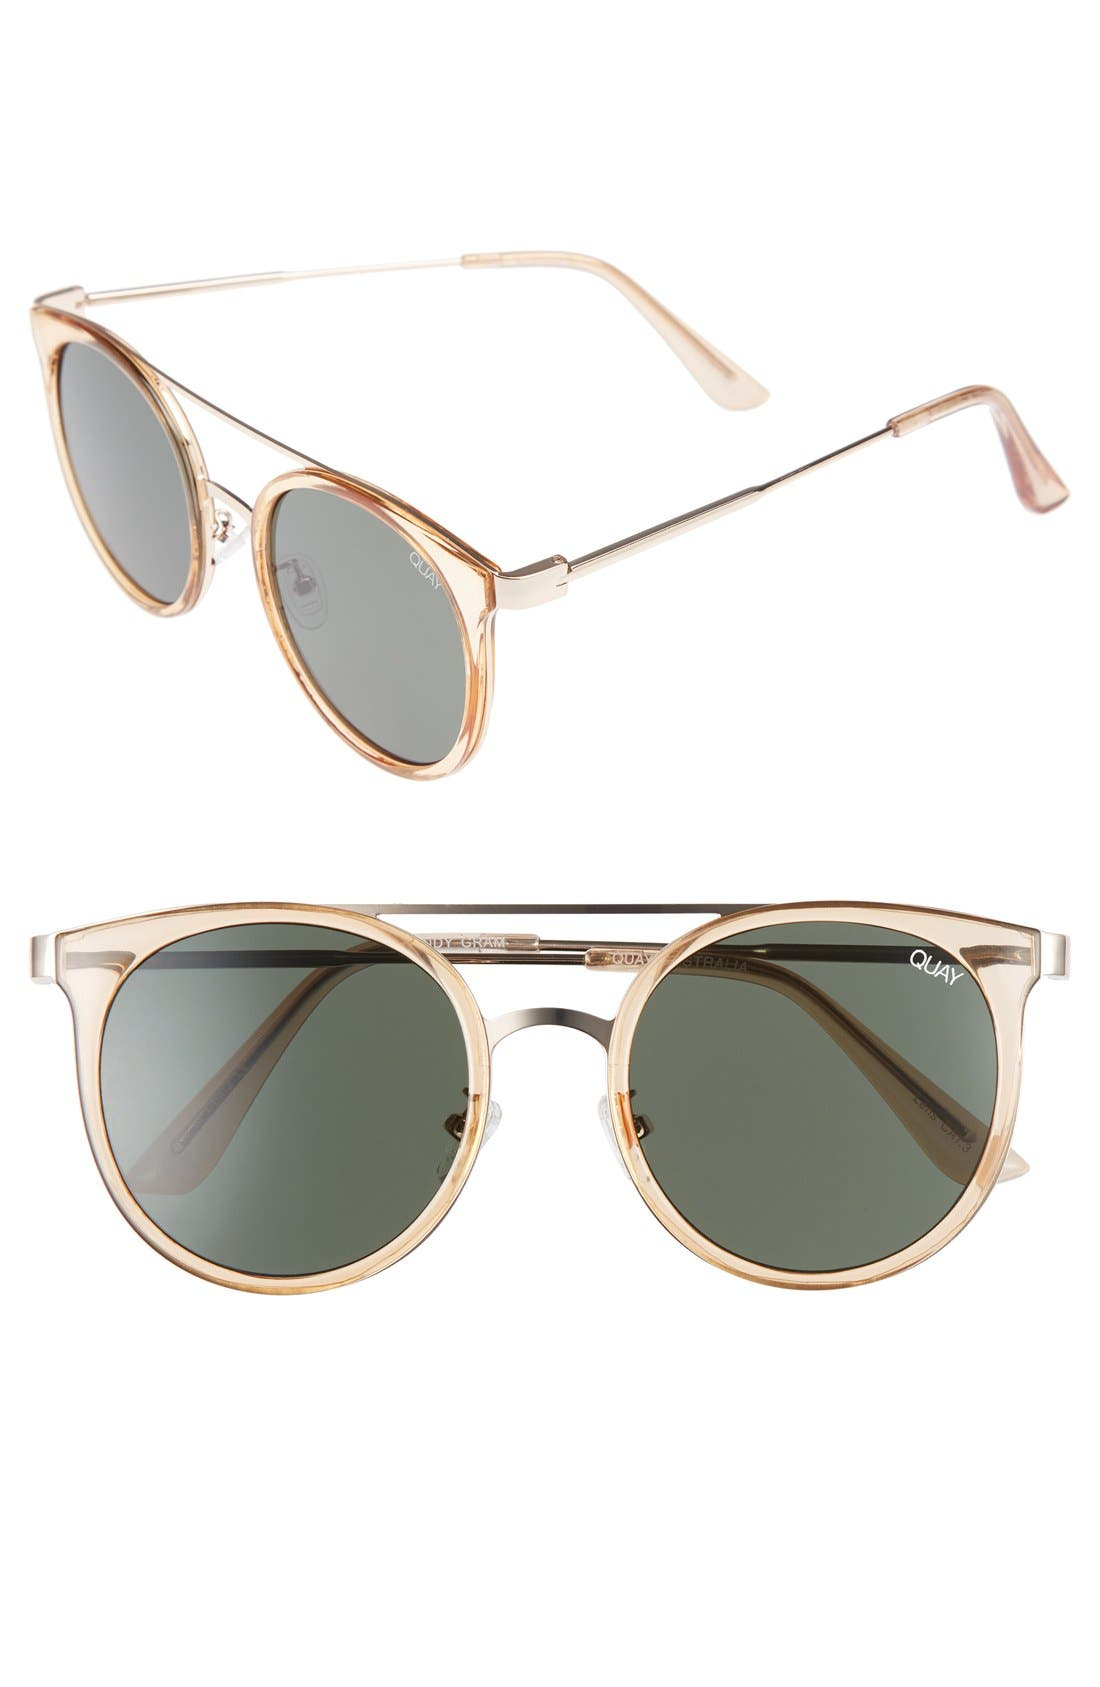 Main Image - Quay Australia Kandy Gram 51mm Round Sunglasses